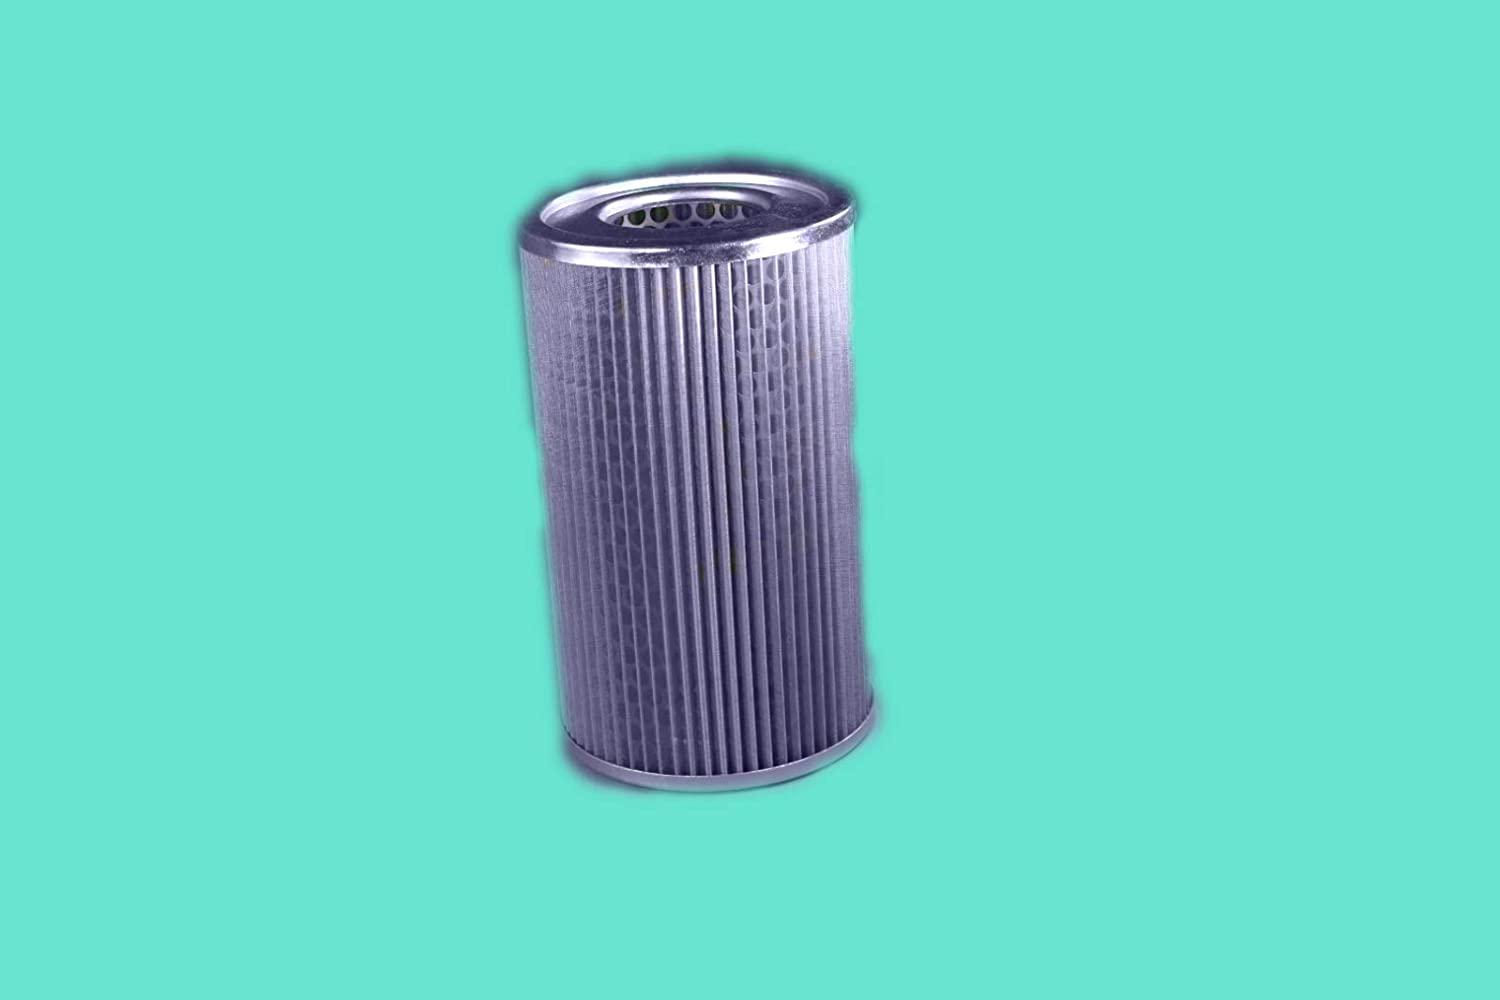 GRESEN 3280 Replacement Filter by Mission Filter